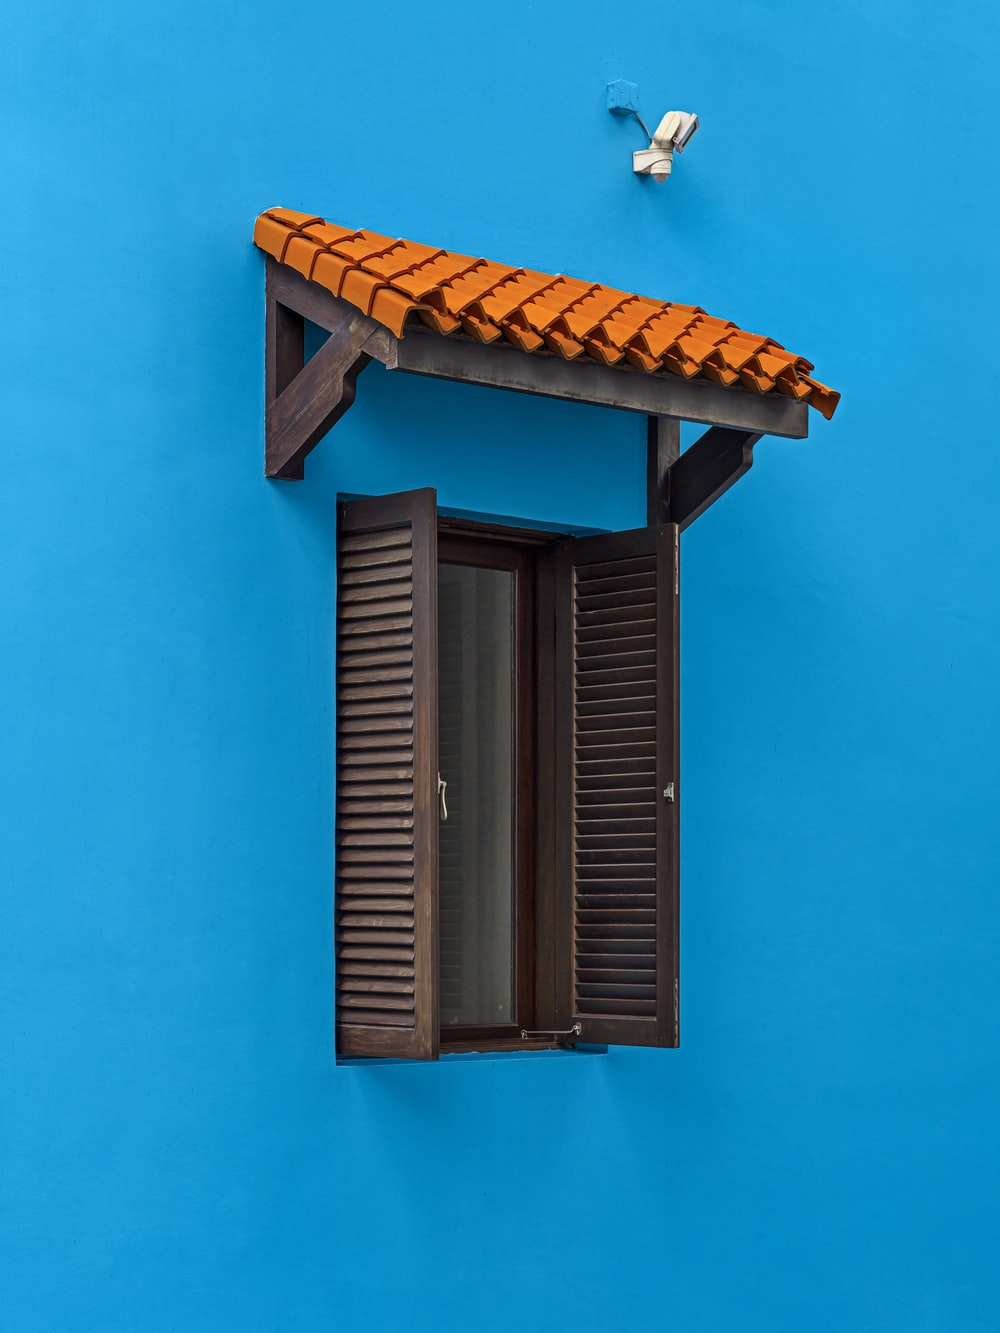 brown wooden window frame on blue wall